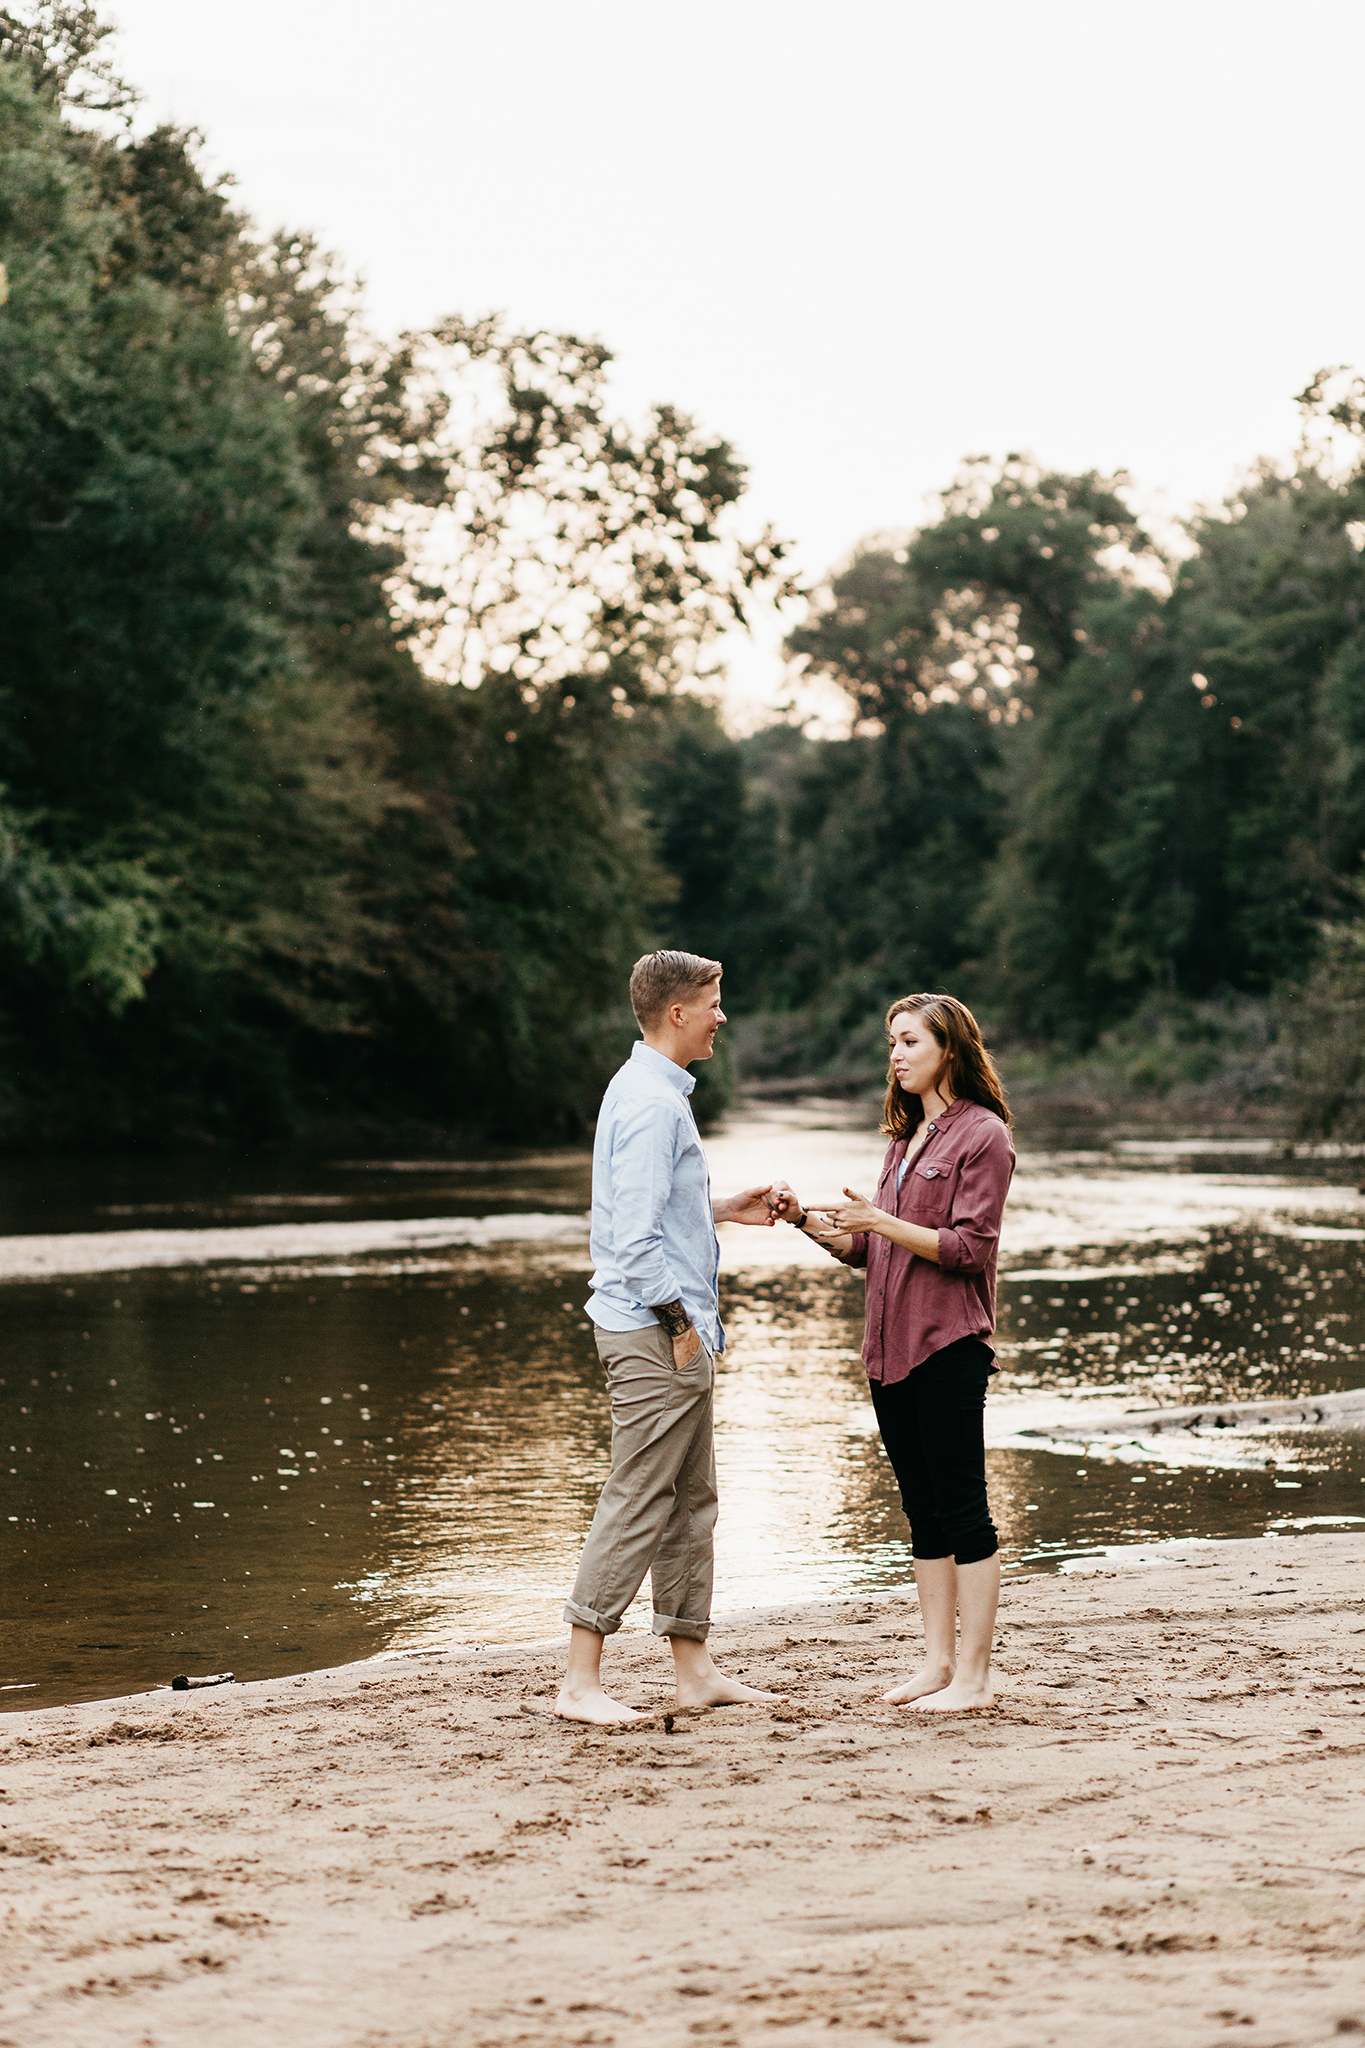 brittany martorella columbus georgia fort benning engagement photographer (29 of 75).jpg